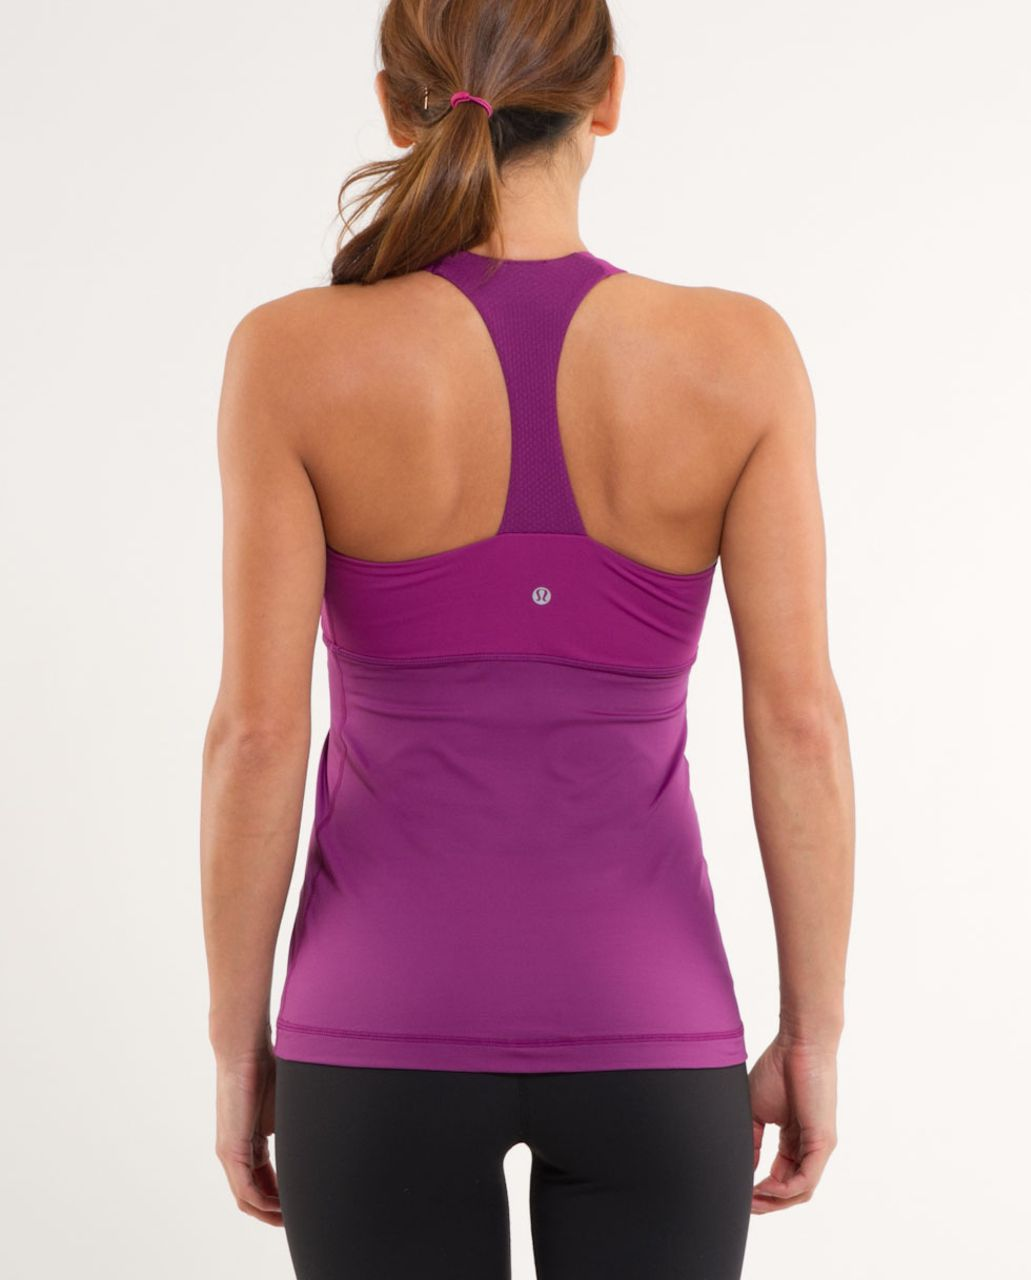 Lululemon Deep Breath Tank *luxtreme (First Release) - Dew Berry